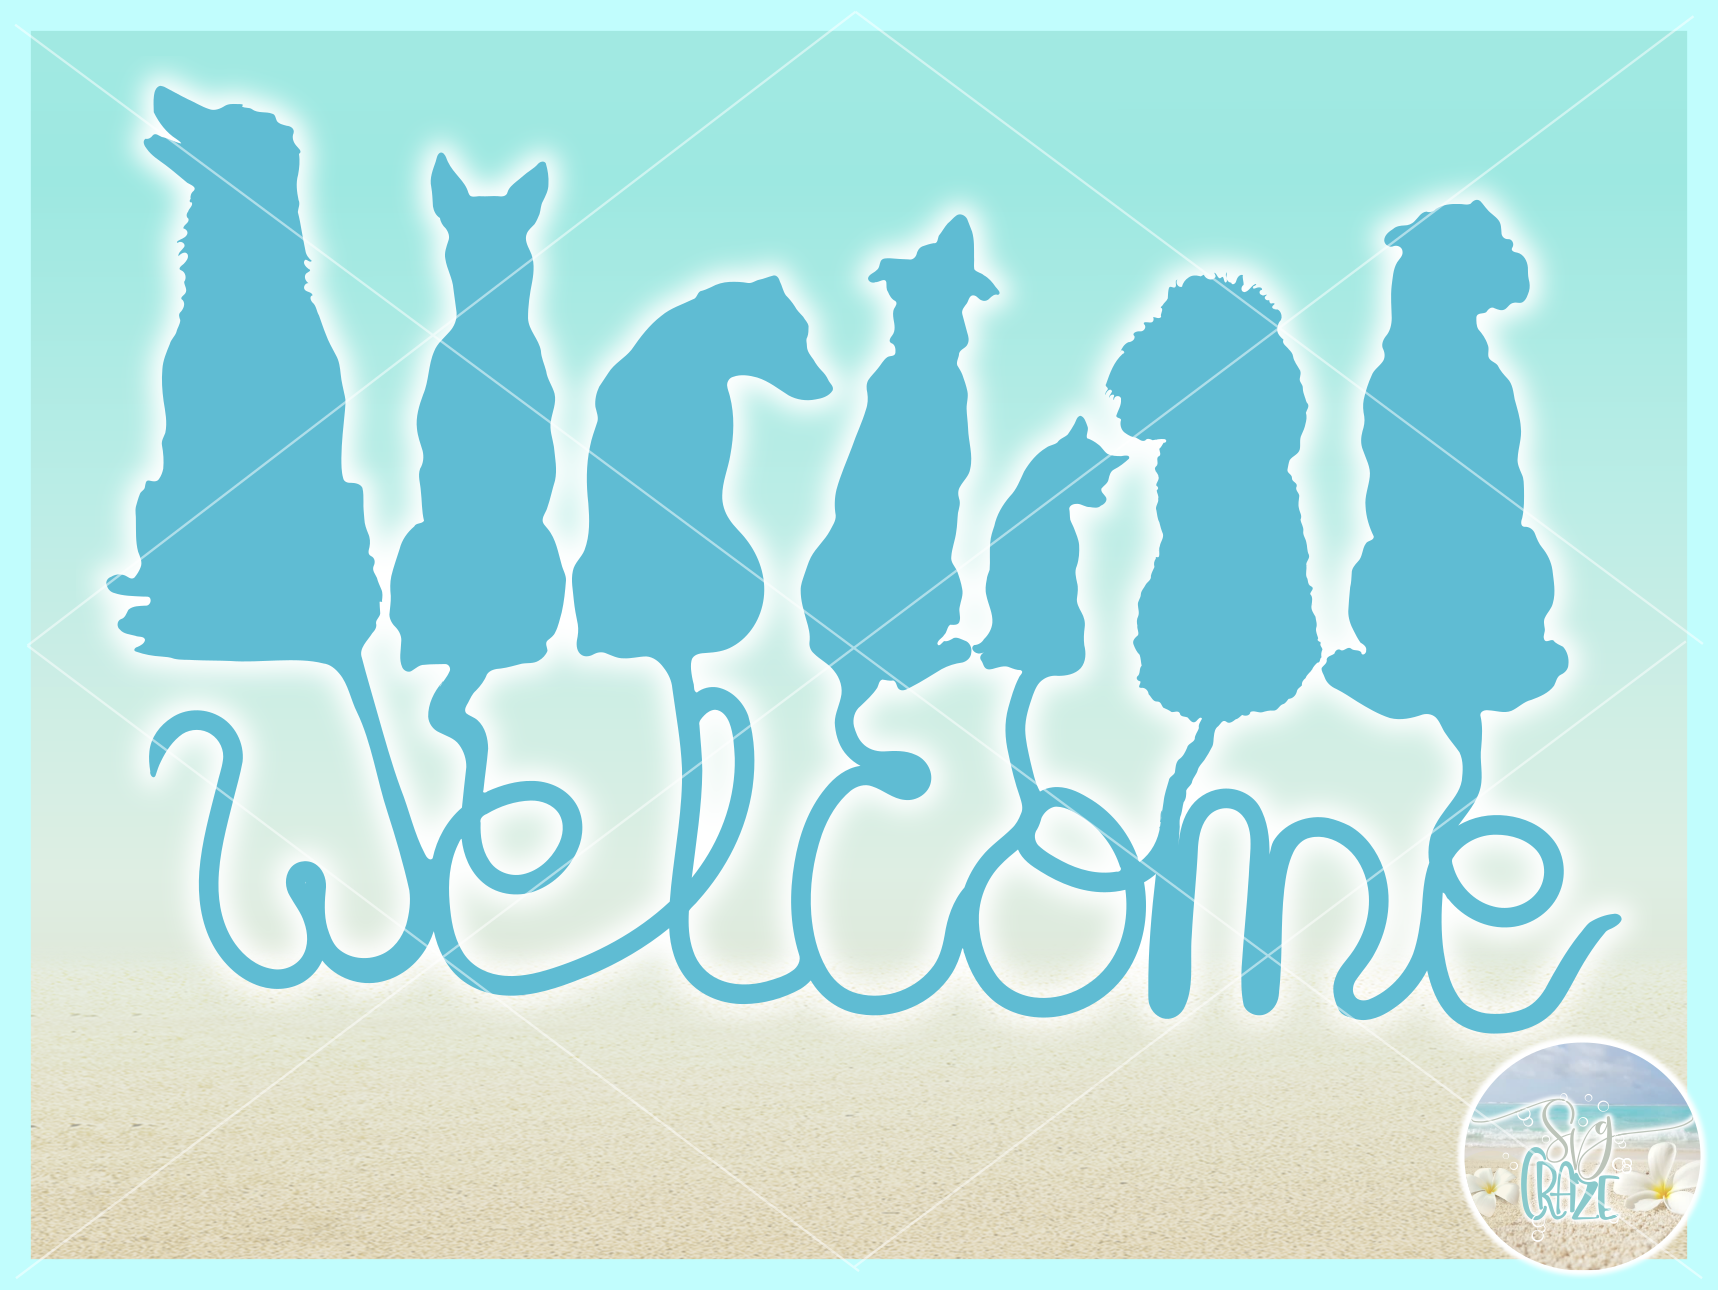 Dogs Welcome Coir Door Mat Design Svg Dxf Eps Png Pdf Files example image 3